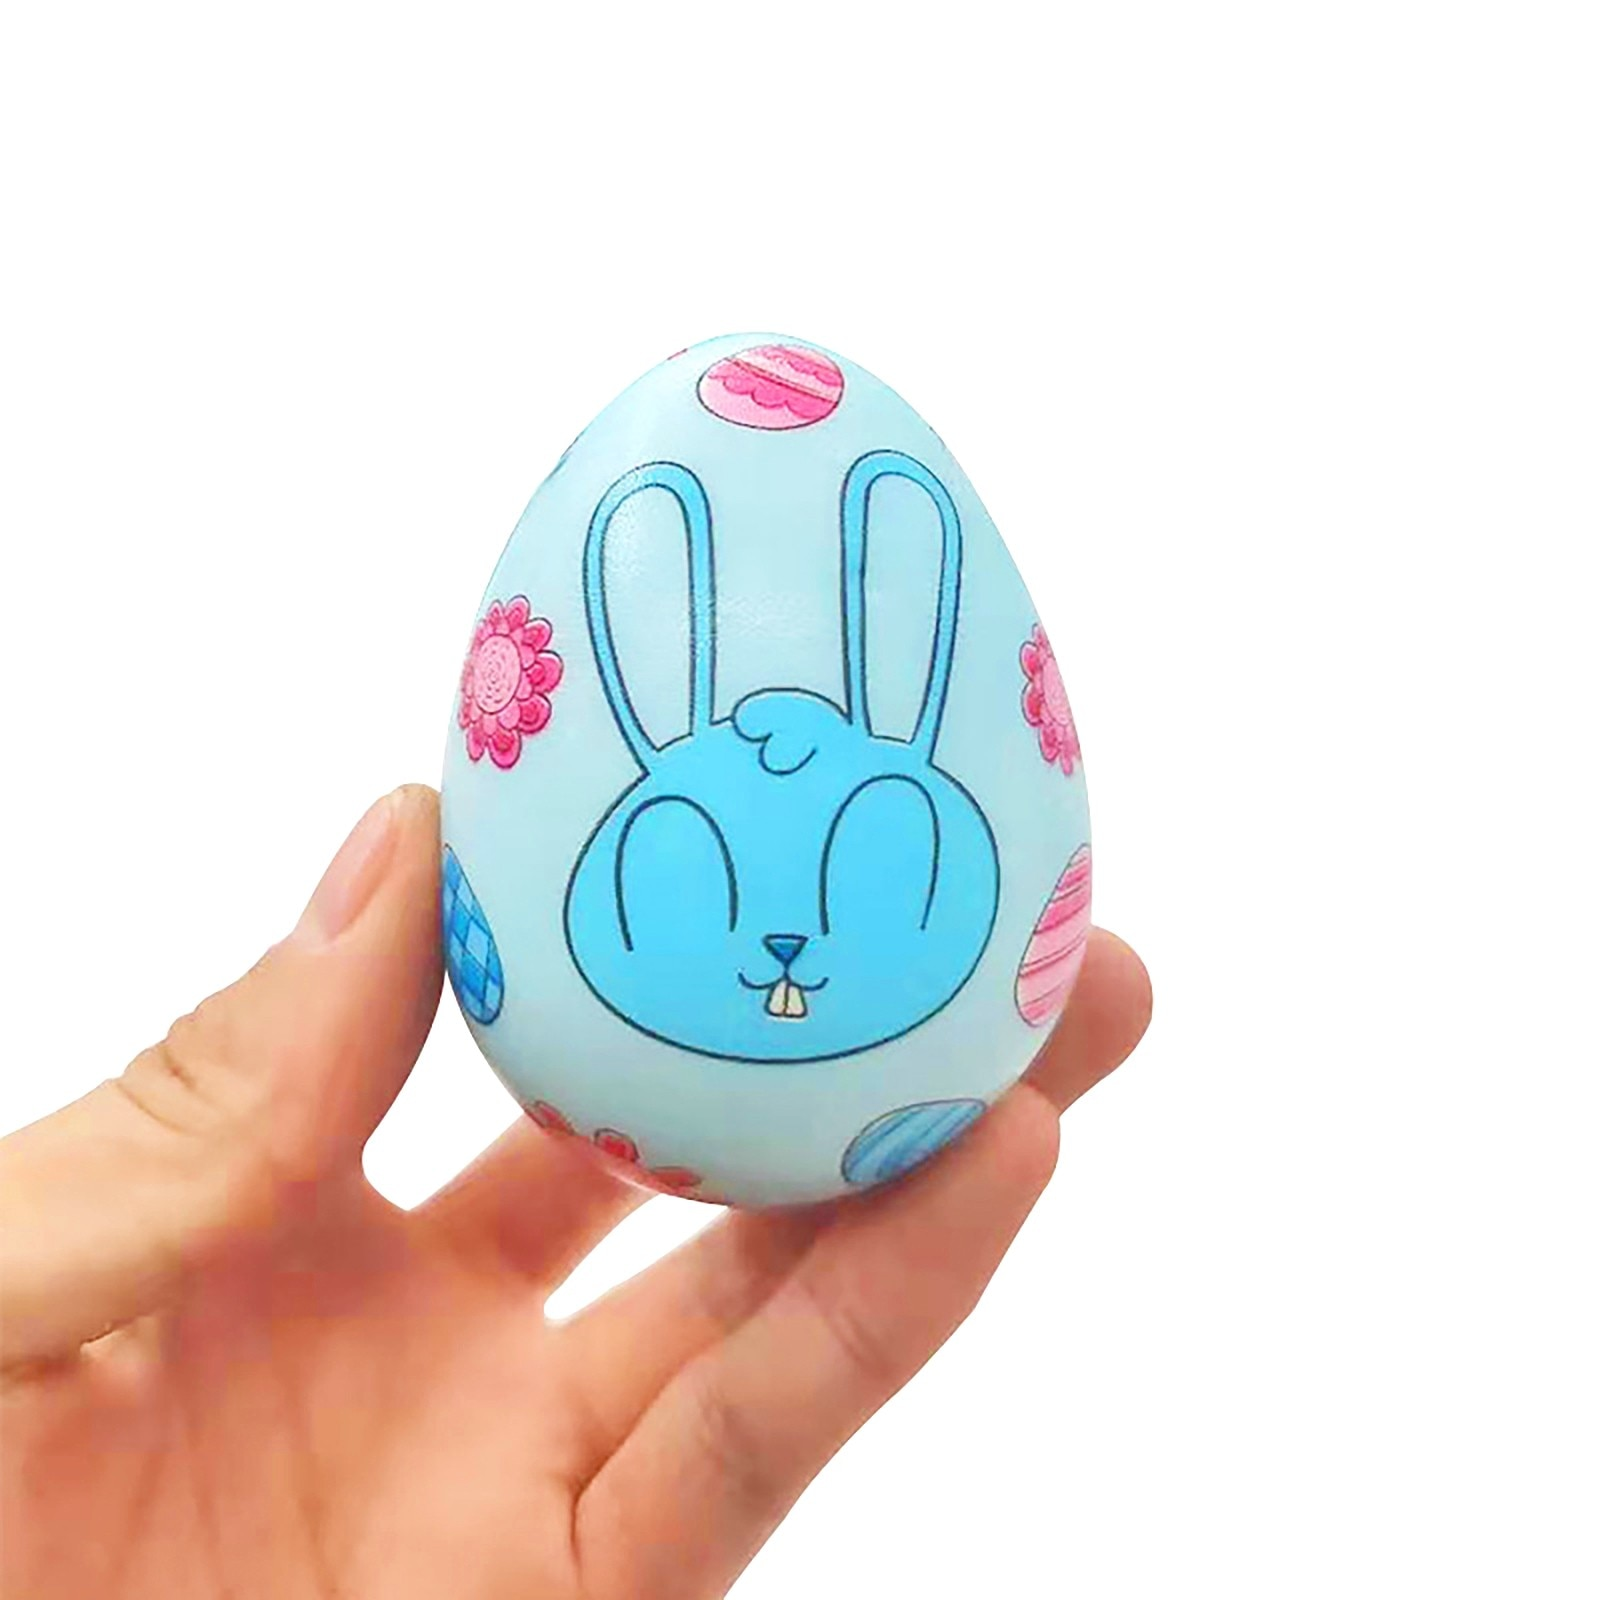 Fidget Toys Squeeze Stress Reliever Squishy Sensory Toy Slow Re bound Toys Easter Egg Set Decompression Toys 18PCS антистресс W* enlarge